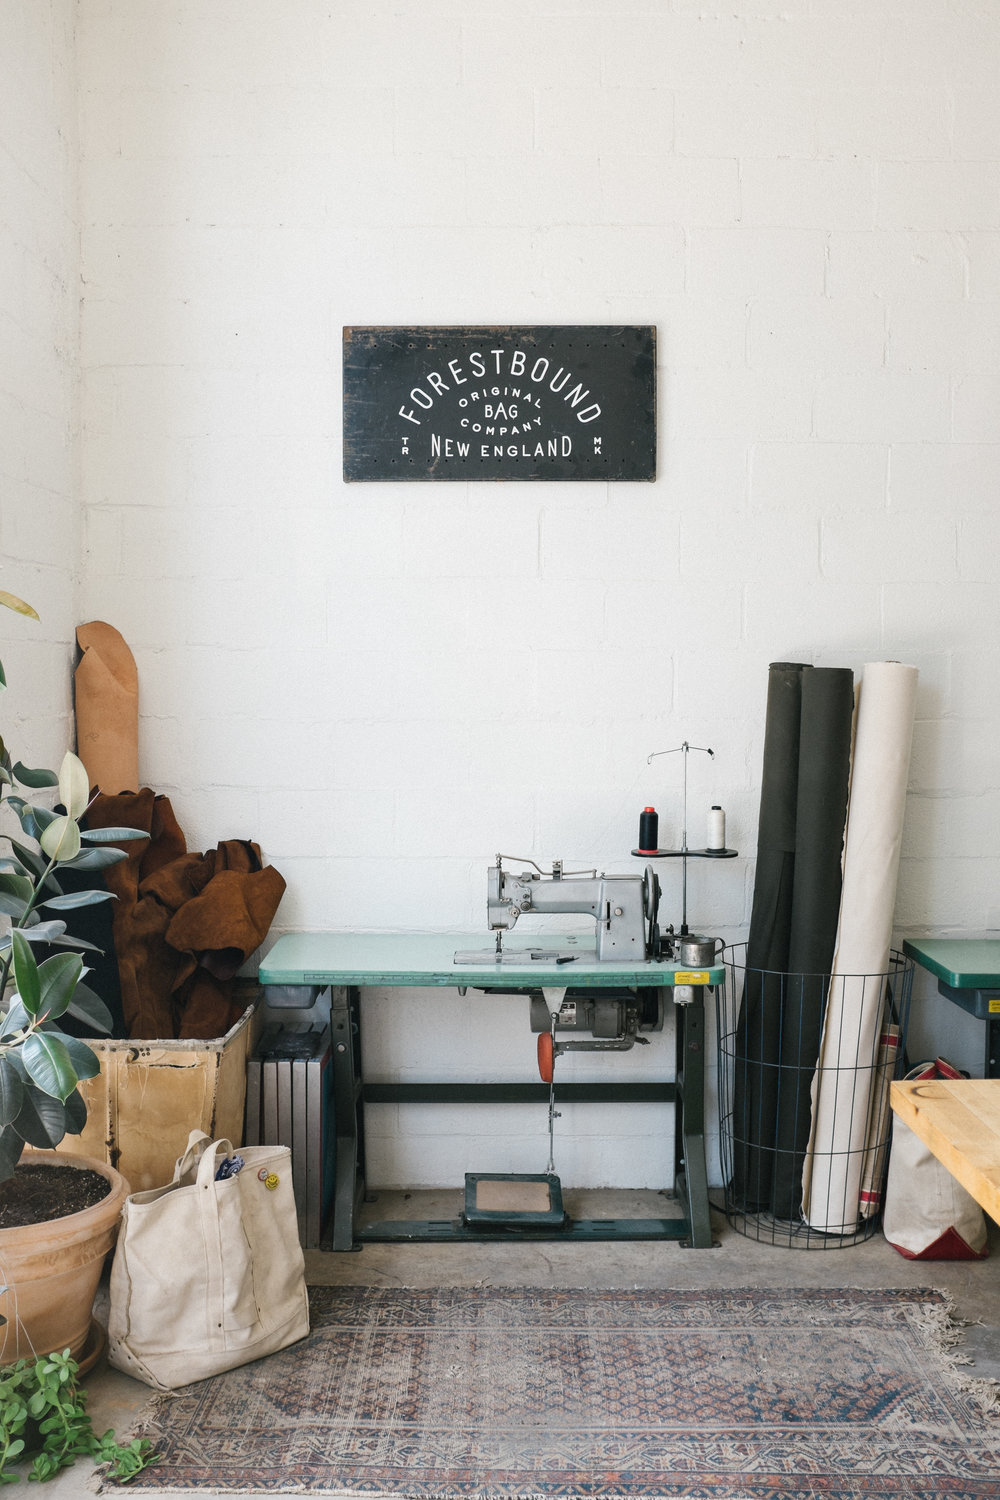 A charming, industrial work space.